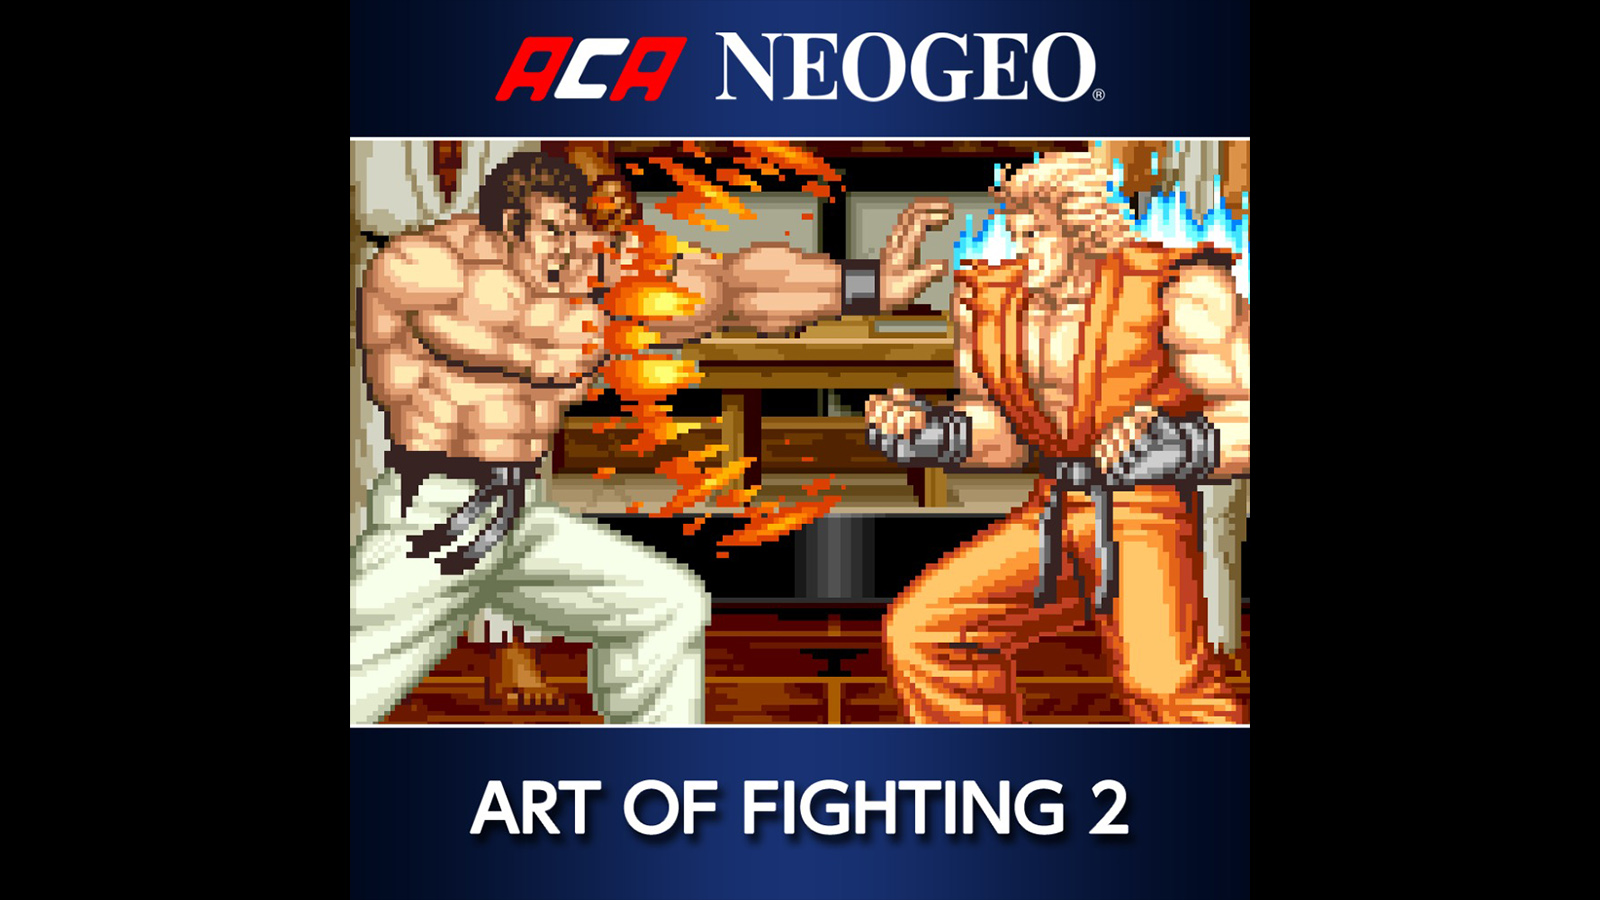 Aca Neogeo Art Of Fighting 2 Game Ps4 Playstation